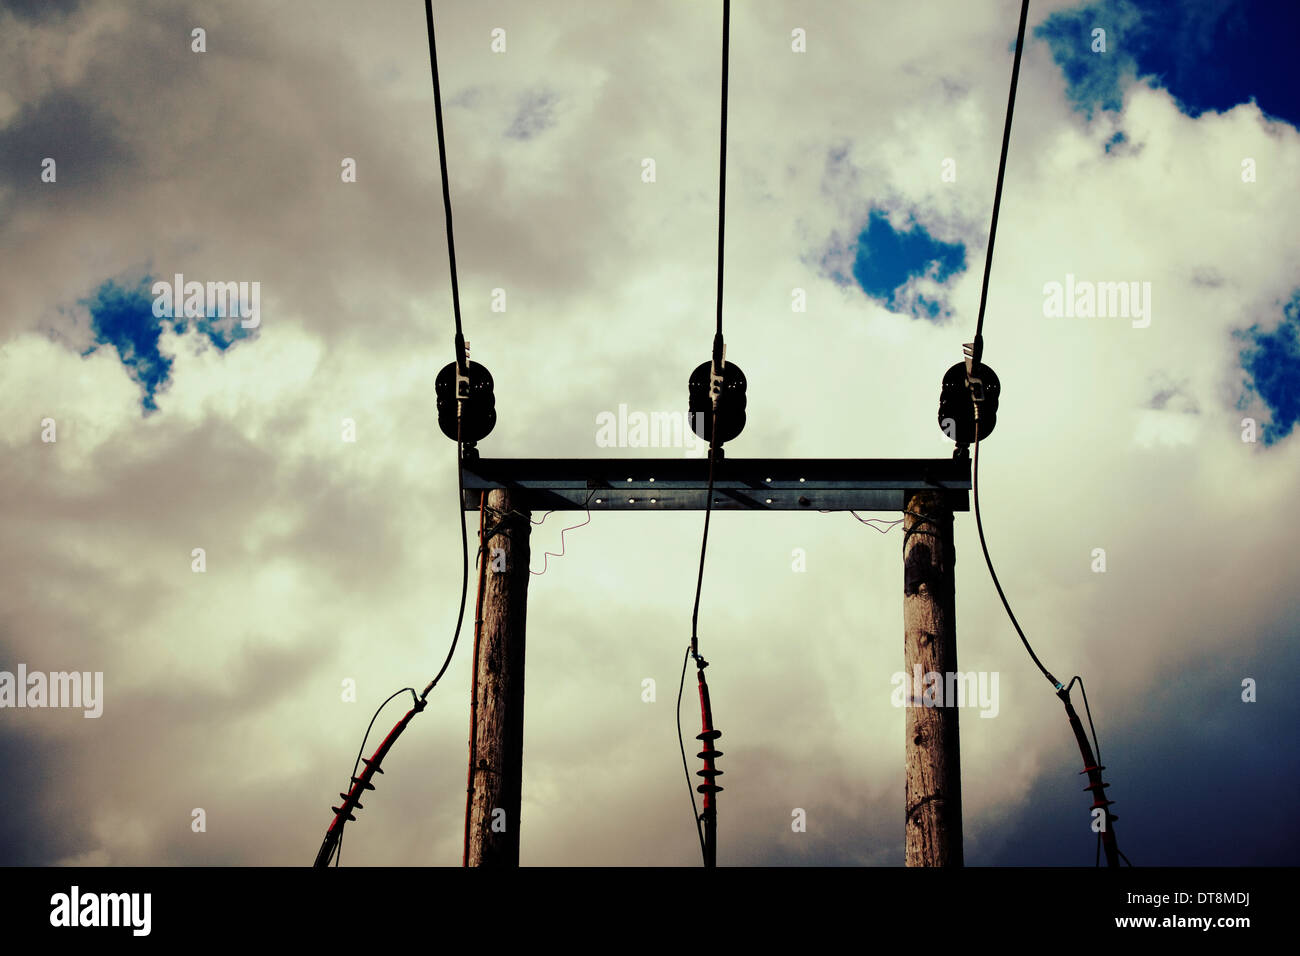 Power cables against a foreboding sky - Stock Image